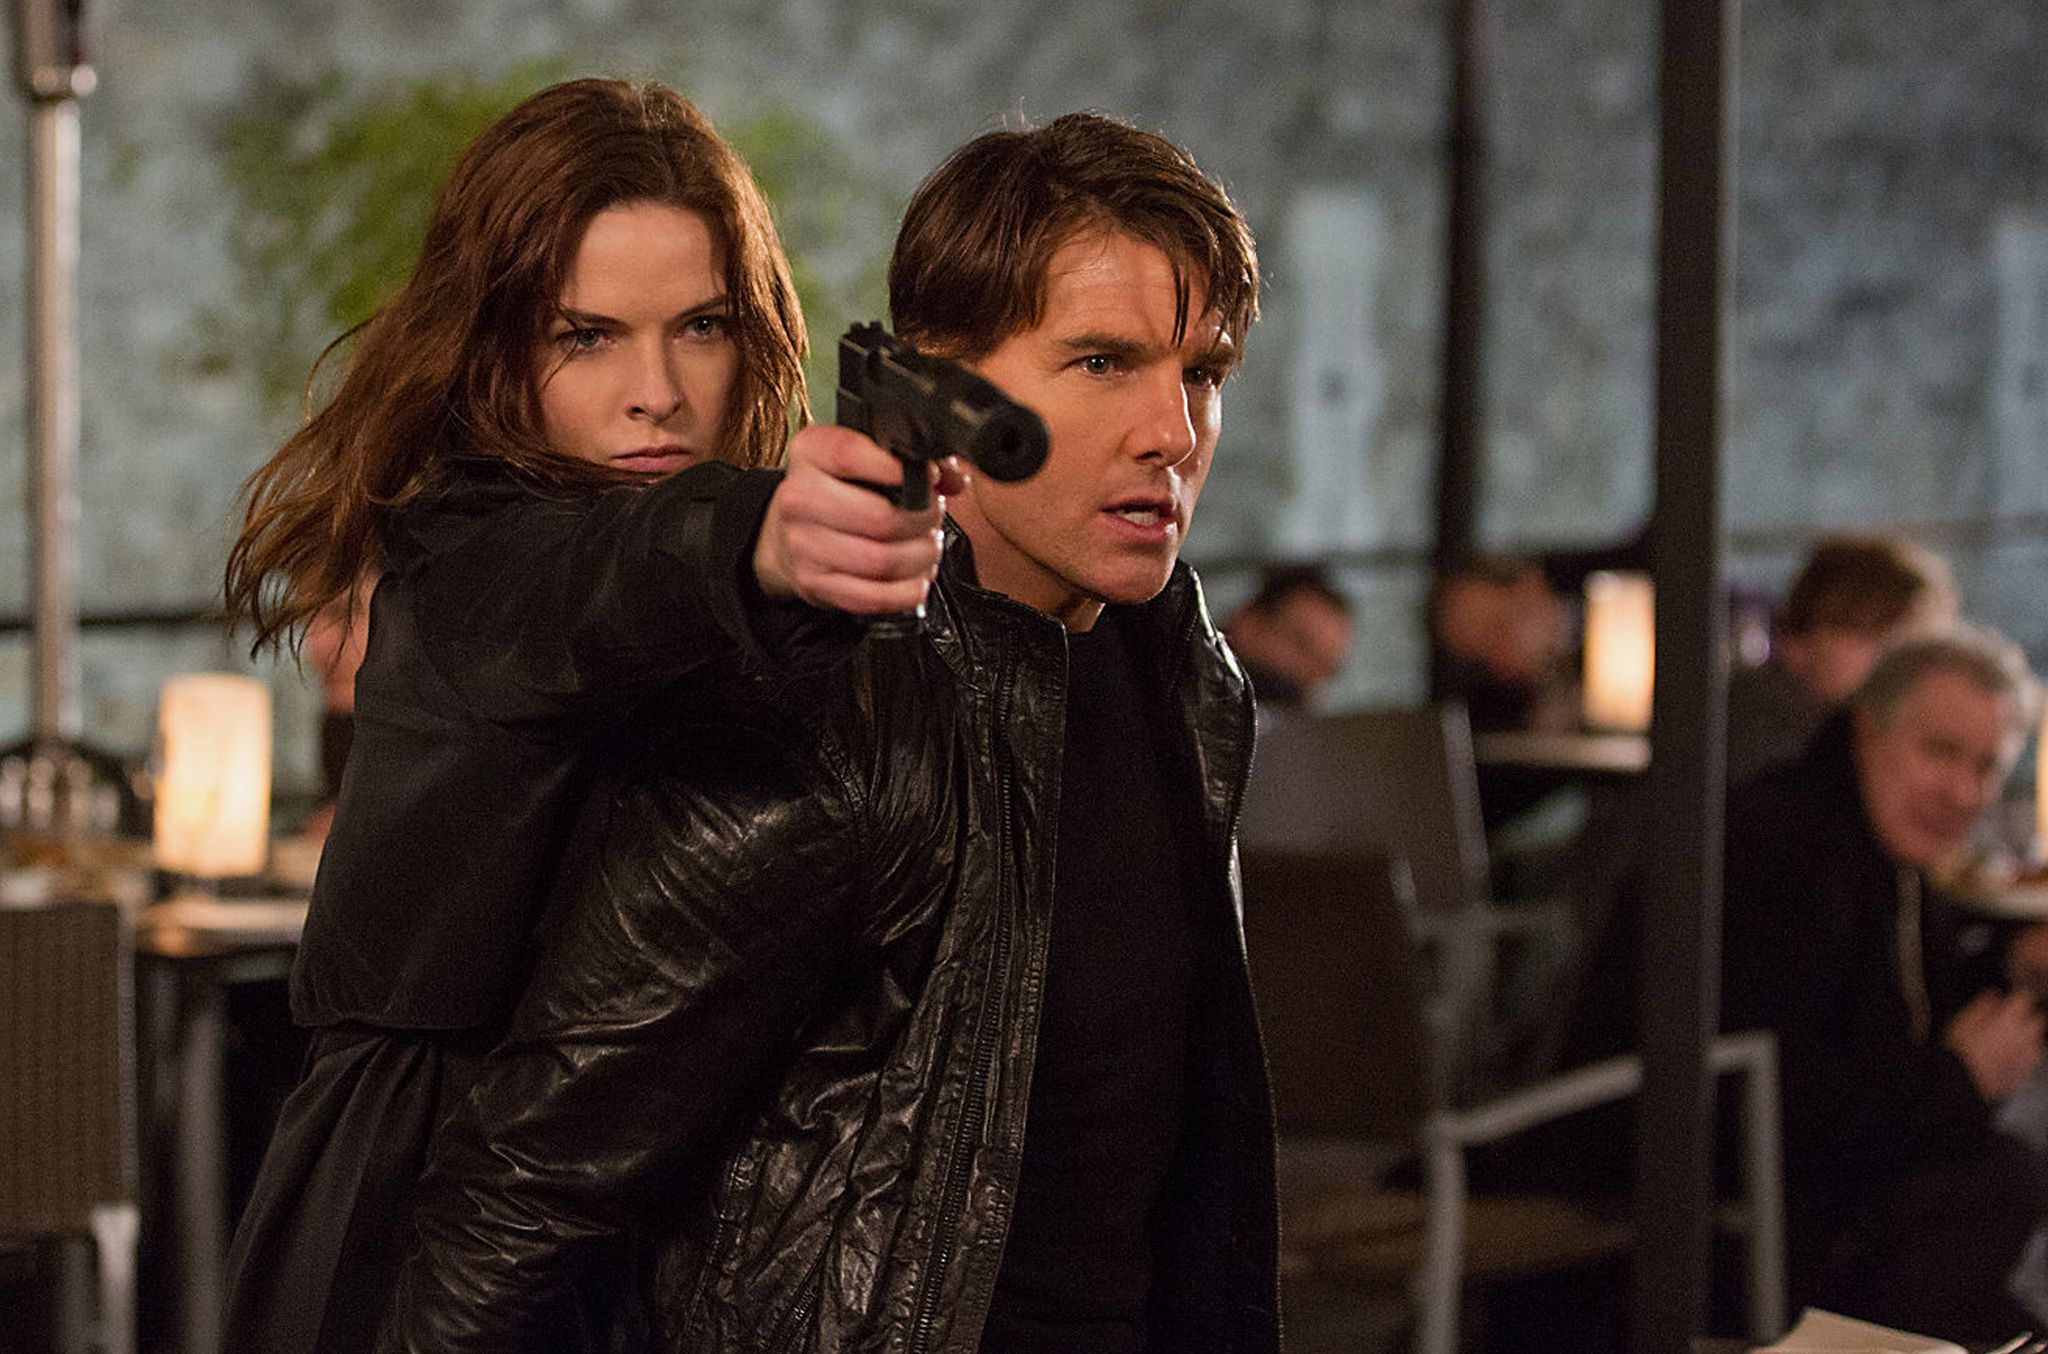 Mission: Impossible 6 Cast Image Brings the Team Back